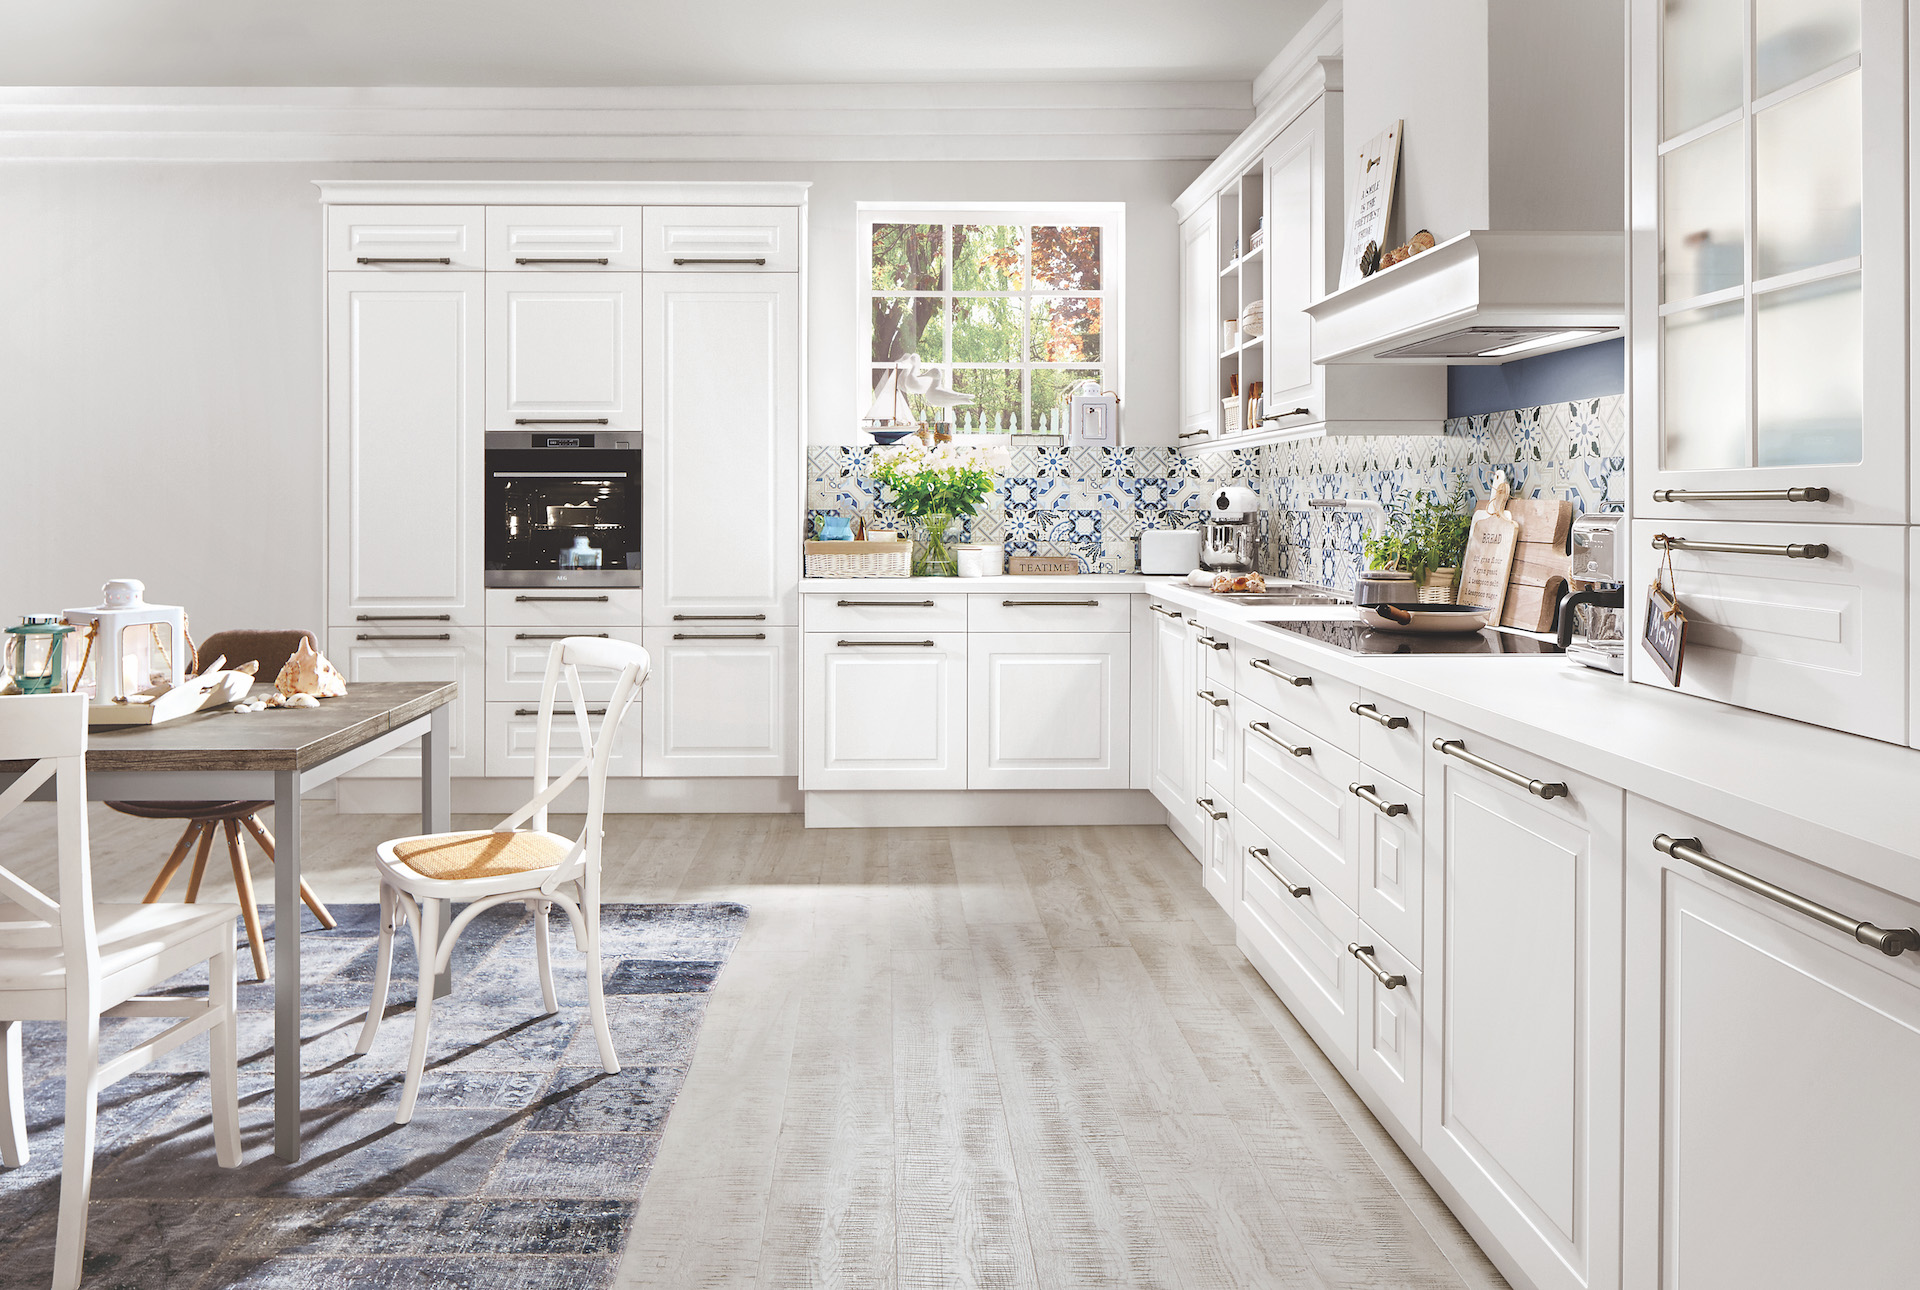 Interior design : Kitchen in Classic style with a modern look